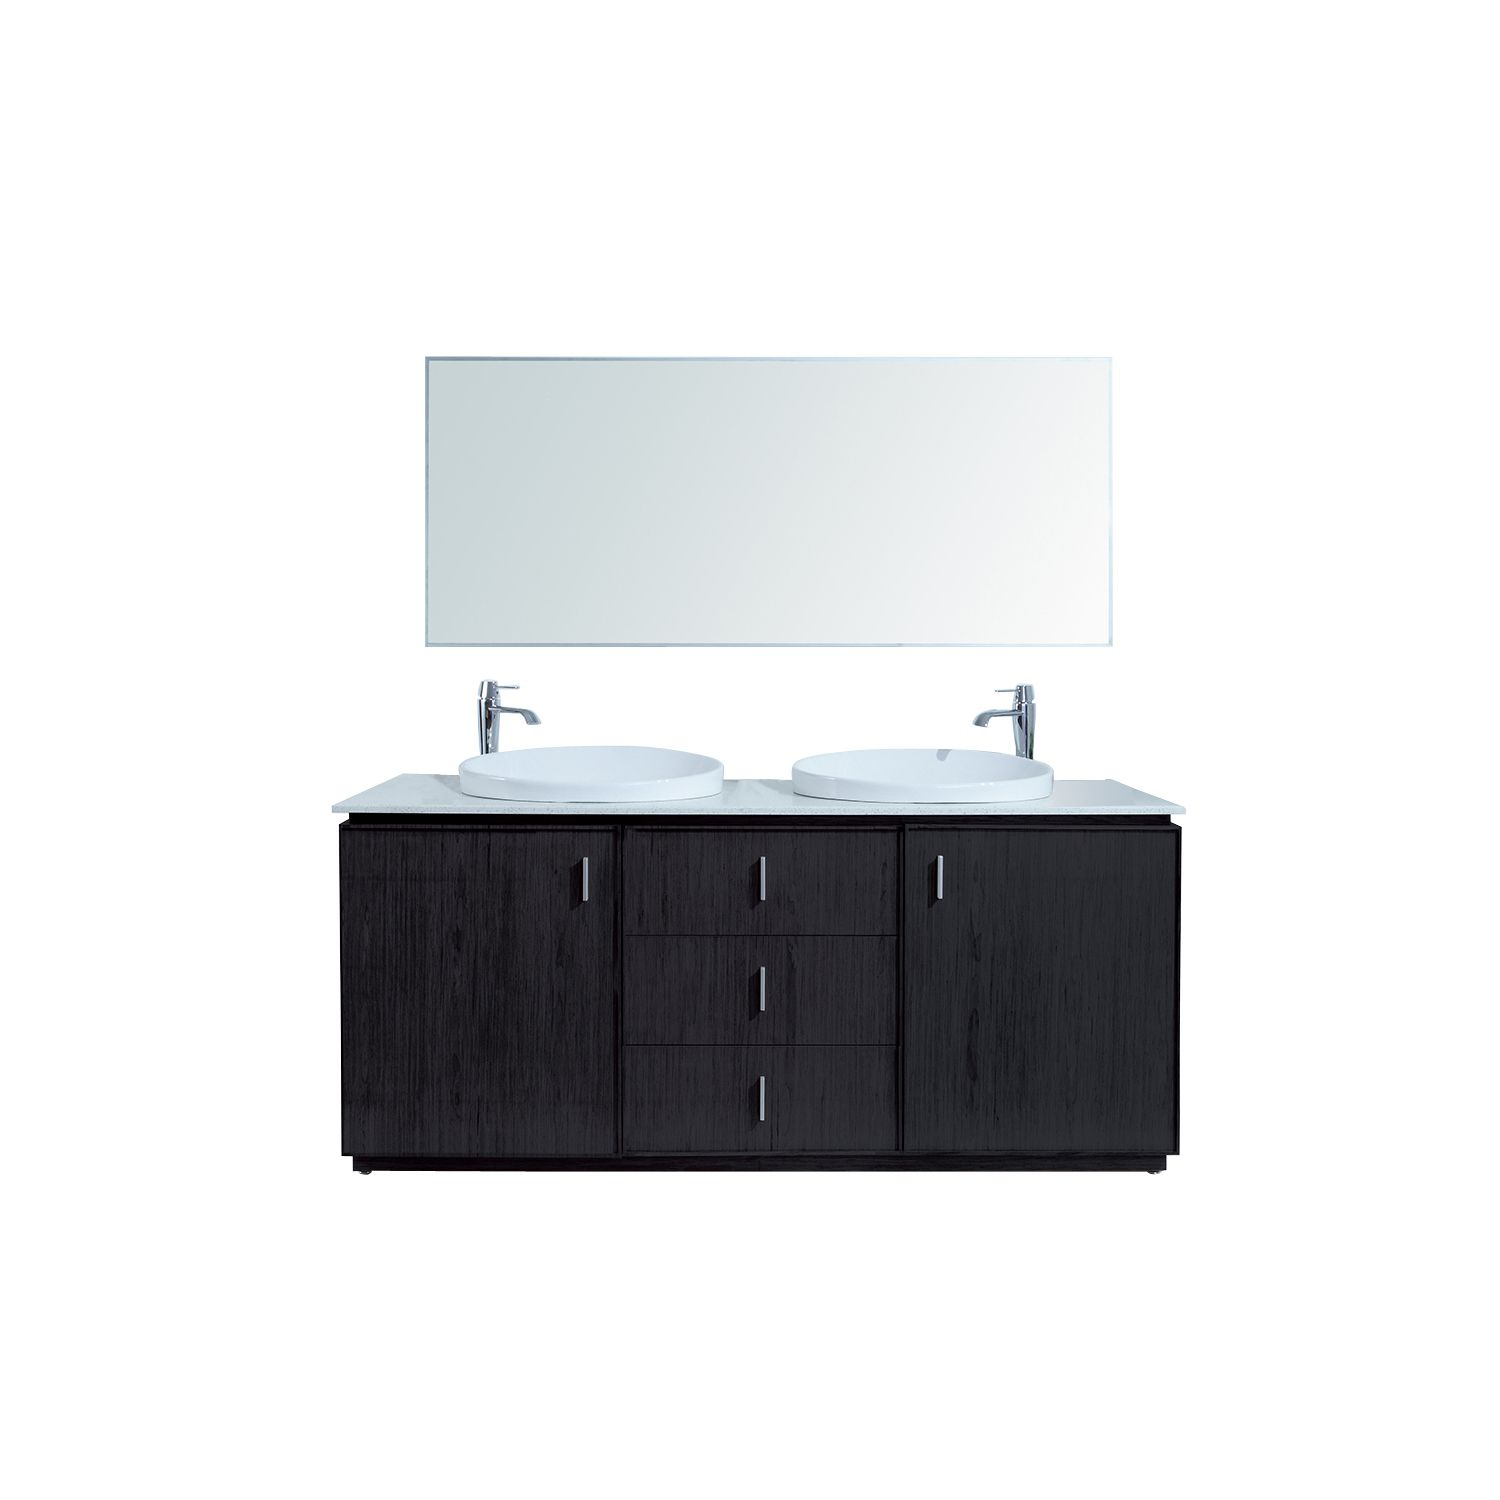 "Stufurhome 72"" Cheshire Double Sink Vanity With Faux Marble Top VM 171"